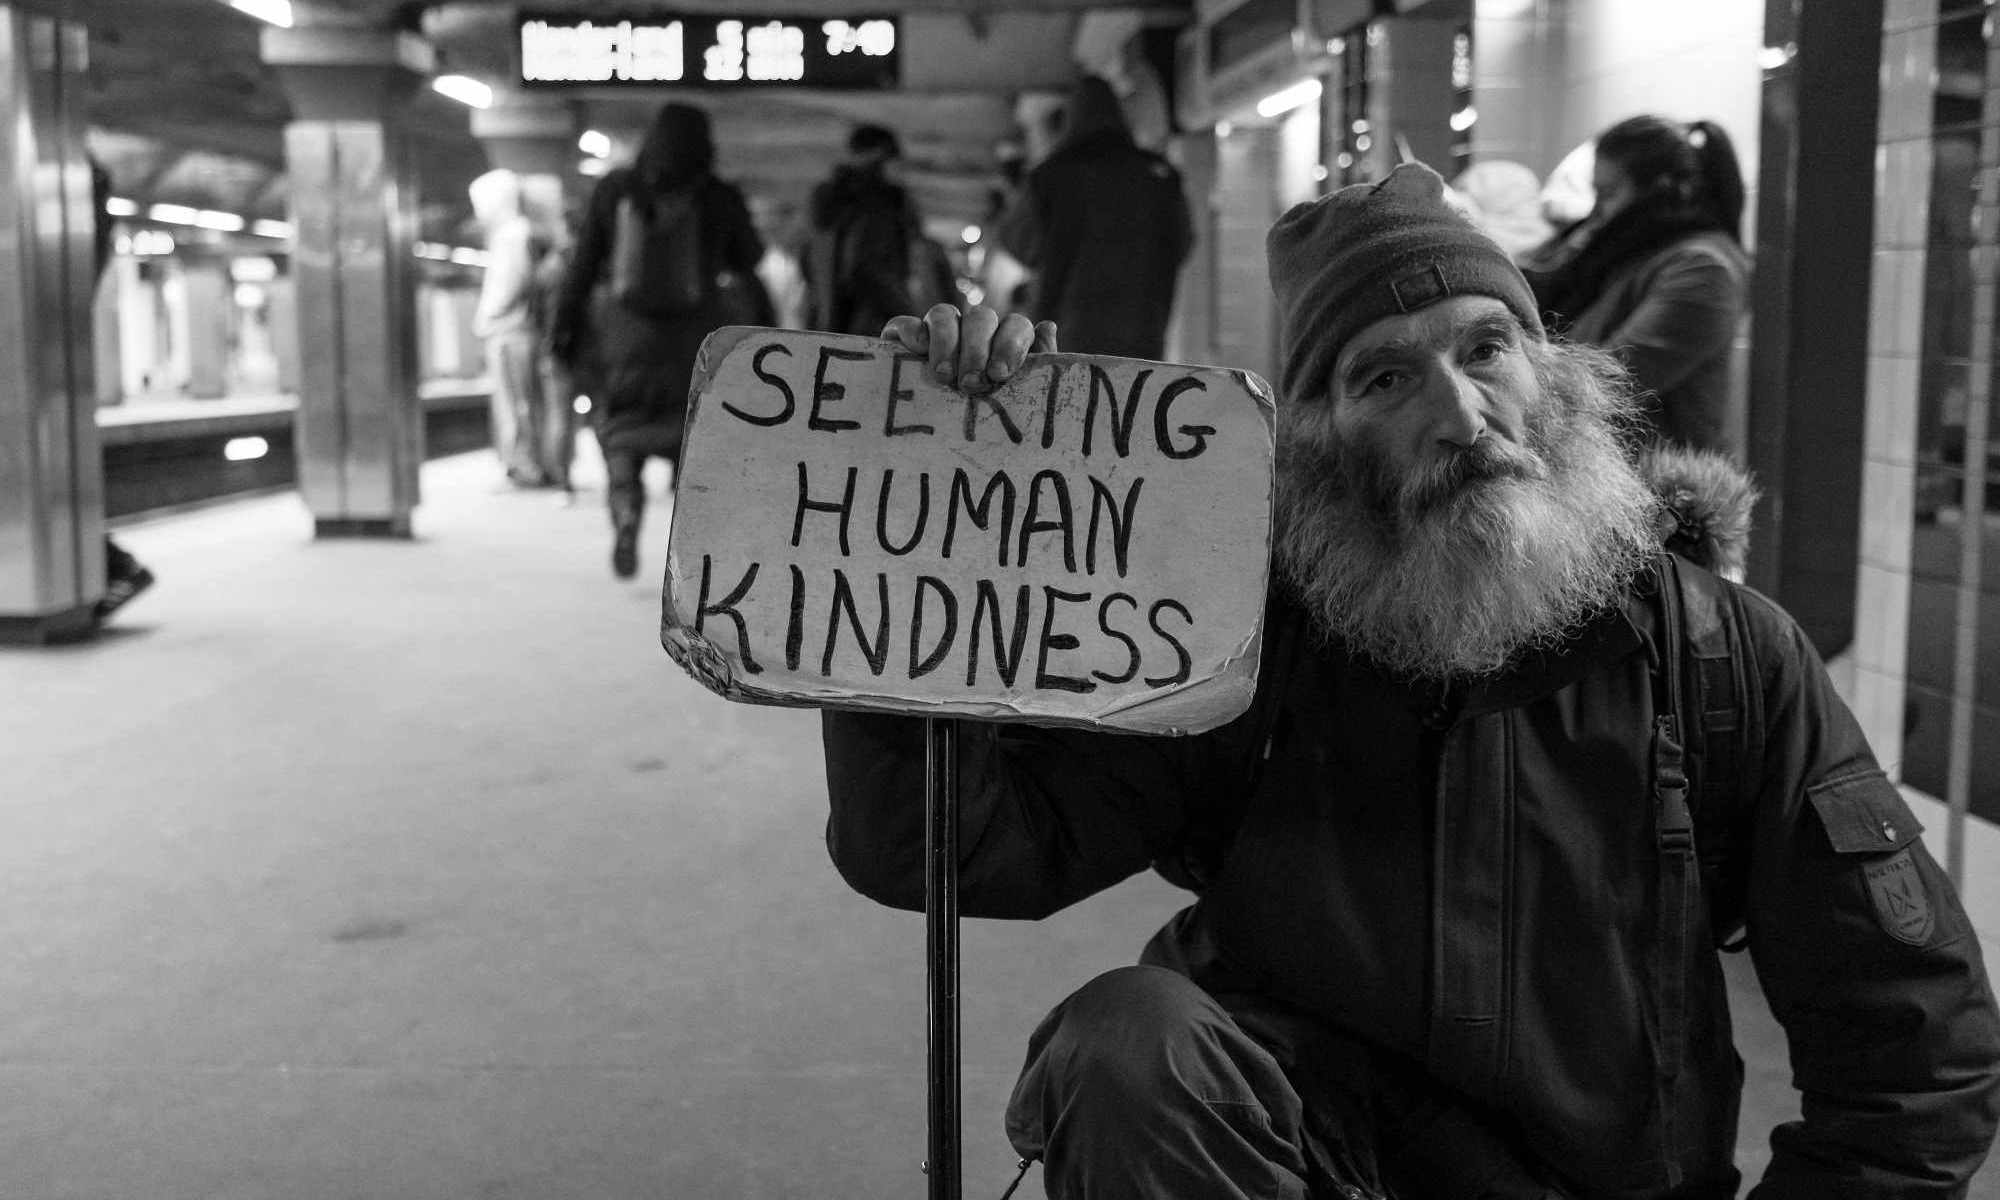 Man seeking kindness